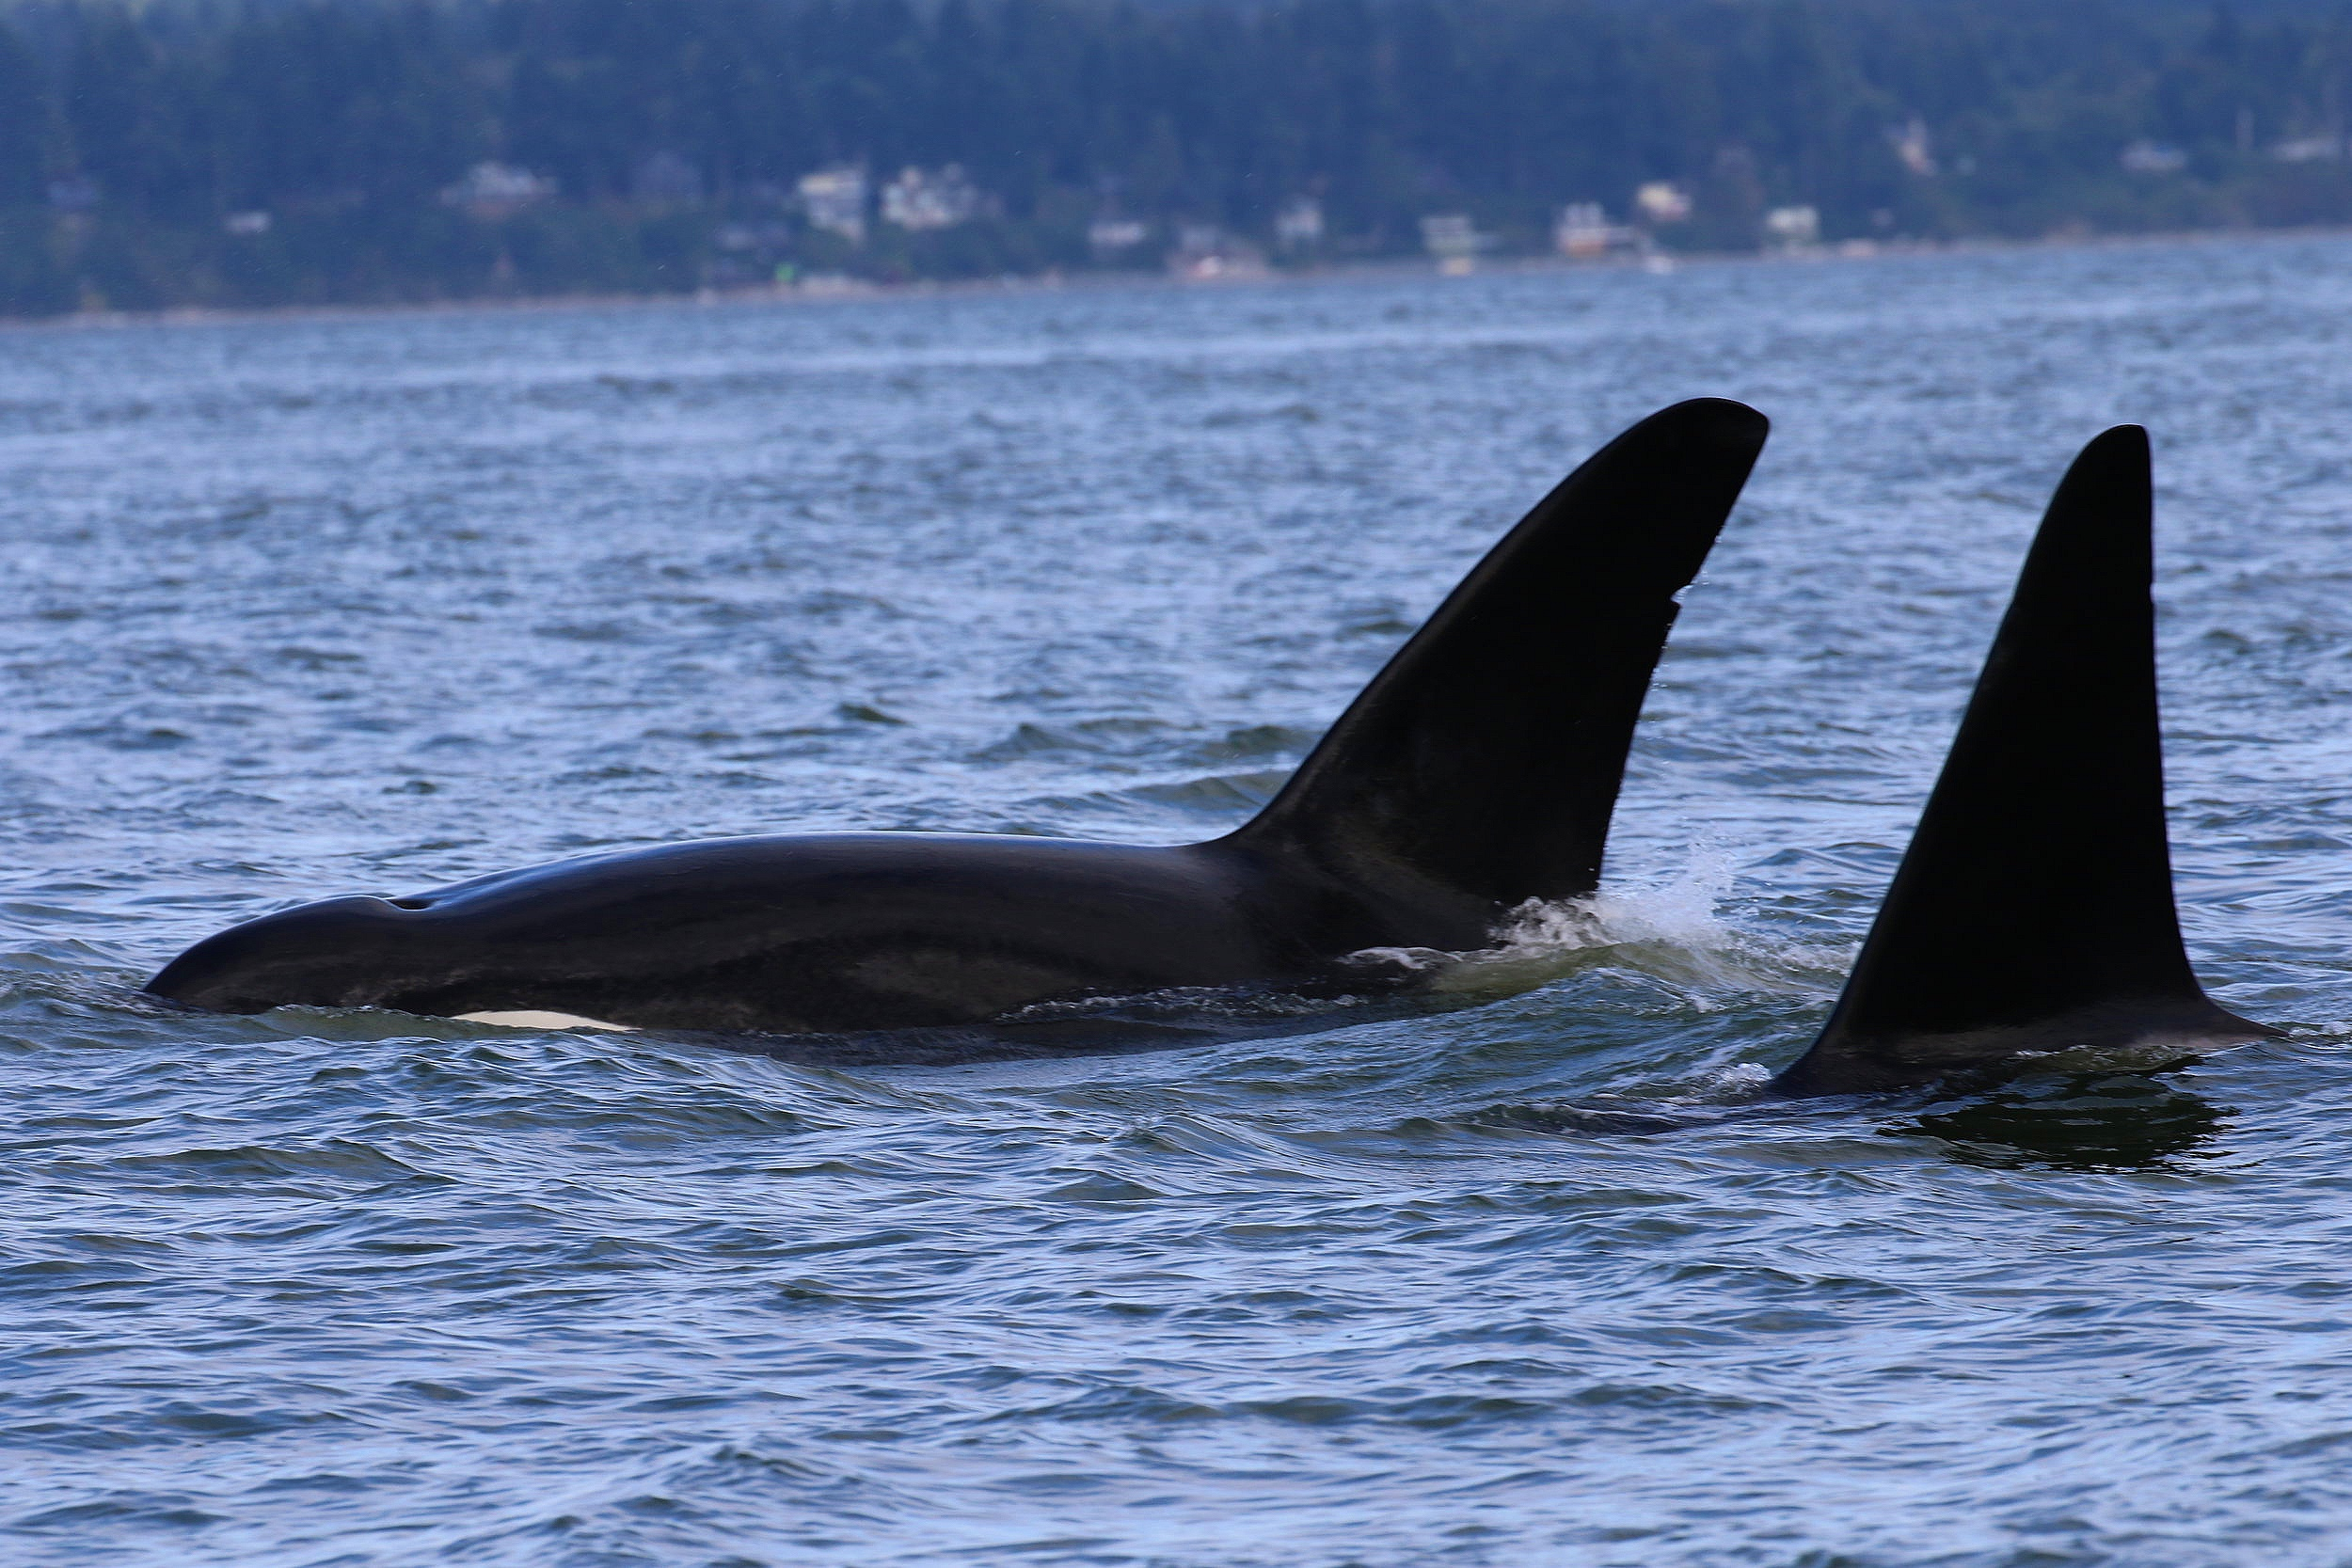 """Brothers travelling together! T19B - """"Galiano"""" (left) and T19C - """"Spouter"""" (right). Photo by Natalie Reichenbacher (3:30)."""